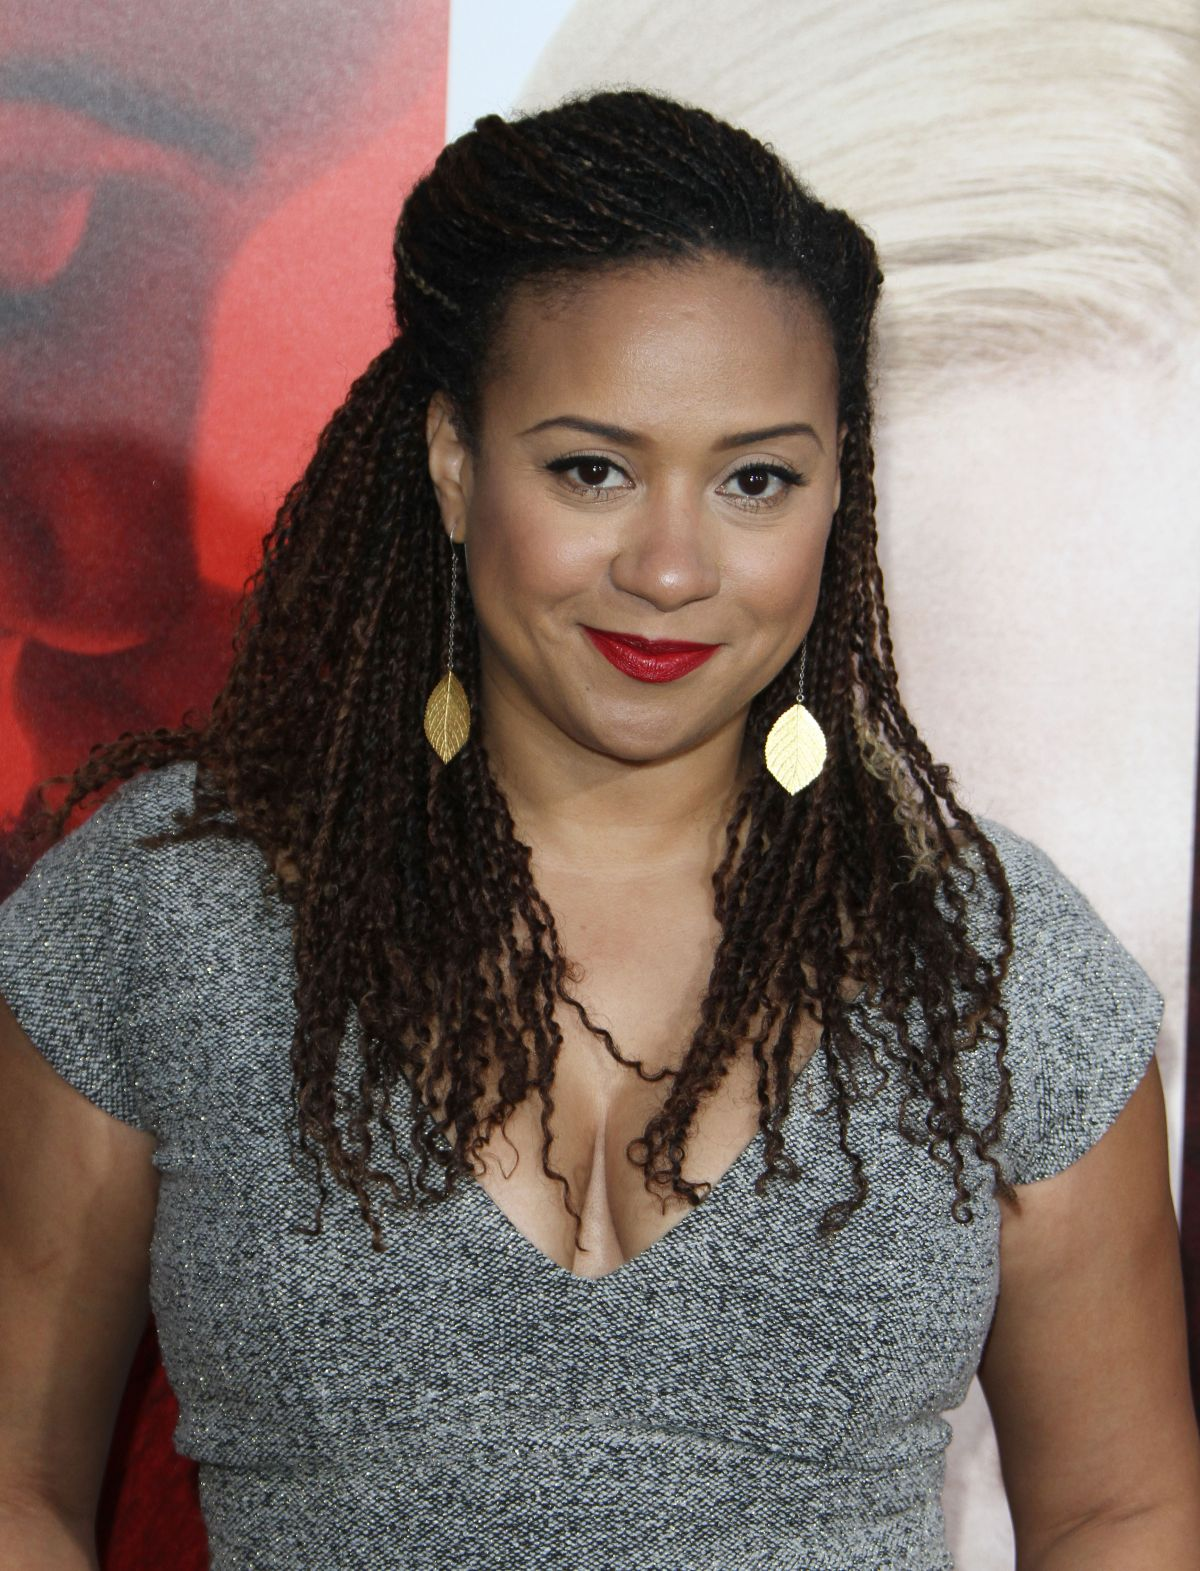 Tracie Thoms nudes (21 photo), Topless, Leaked, Instagram, cameltoe 2015